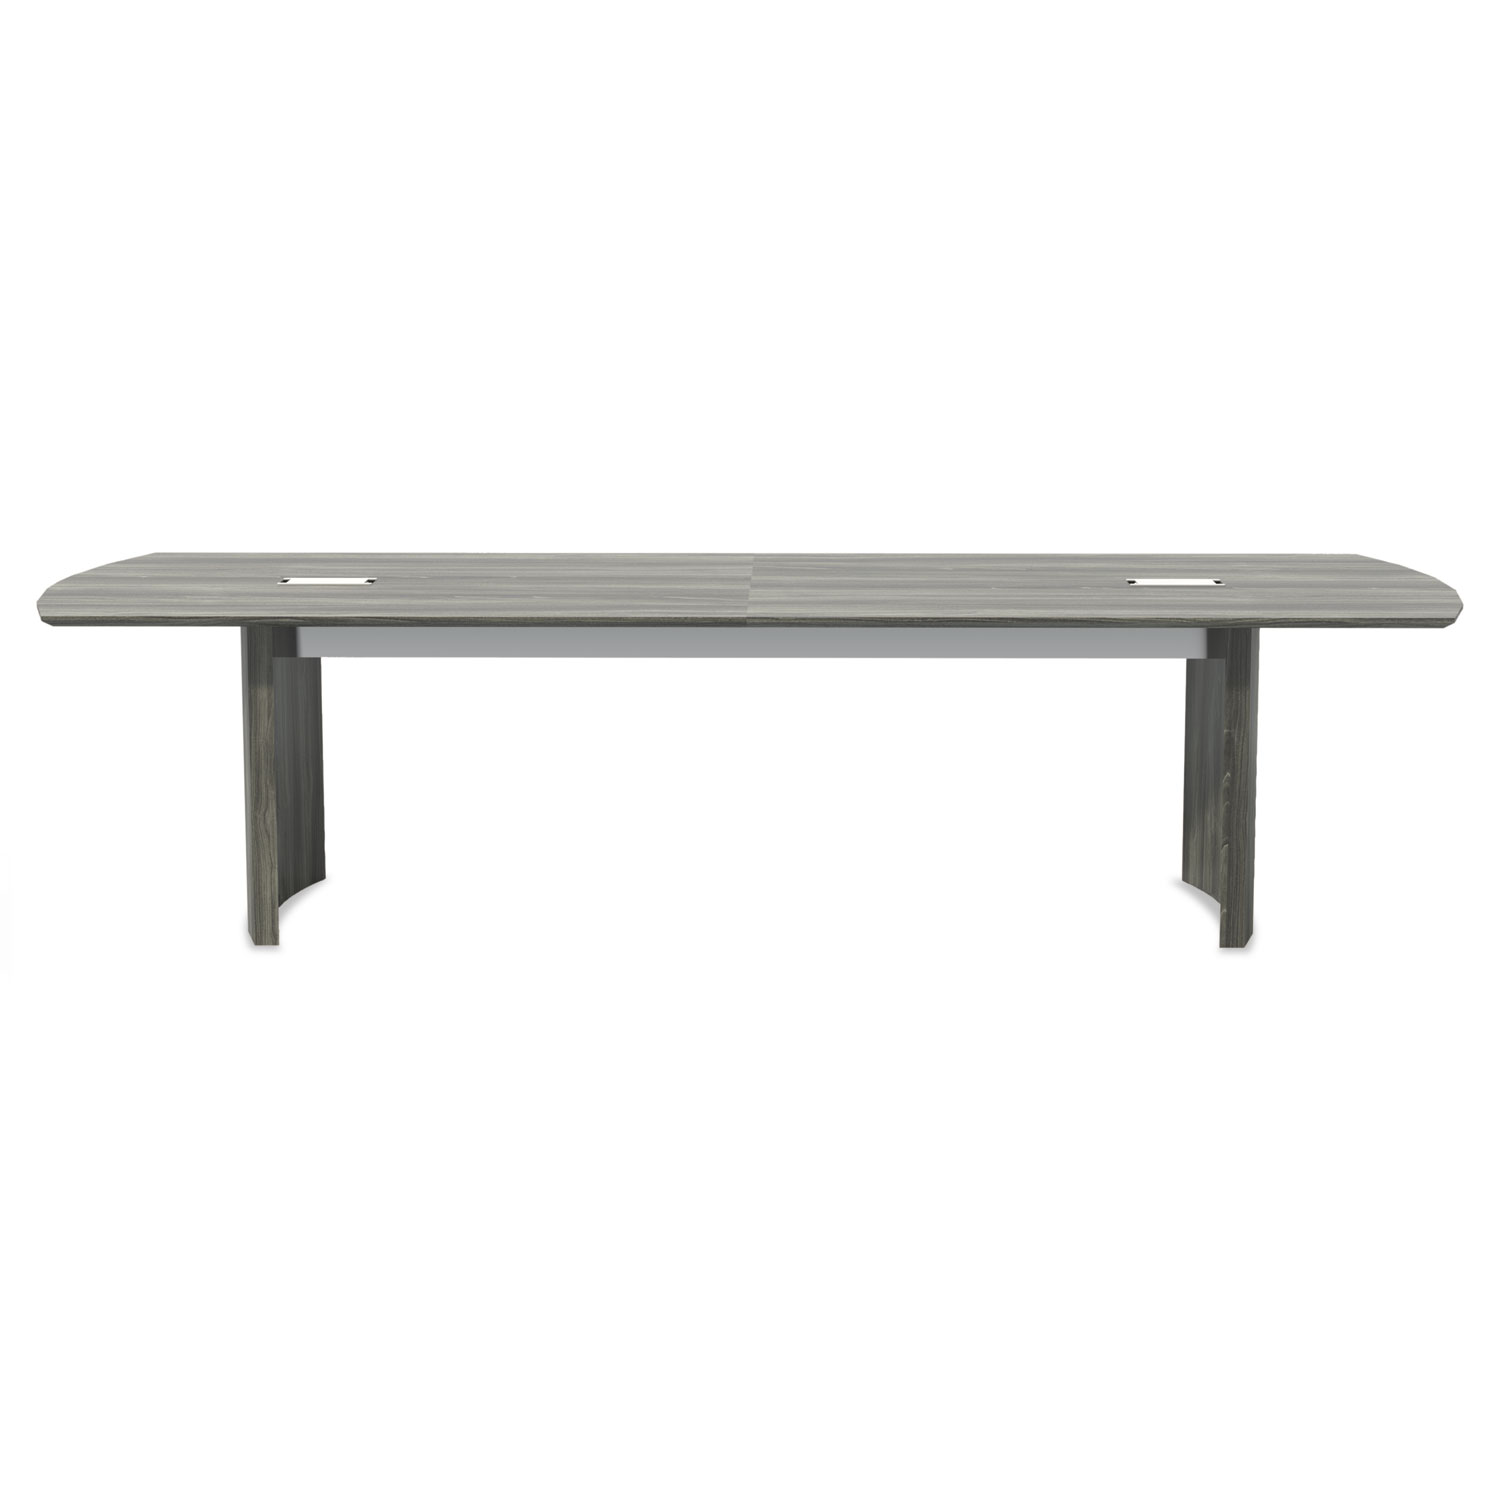 Medina Series Conference Table Legs By Safco MLNMNCBLGS - Medina conference table